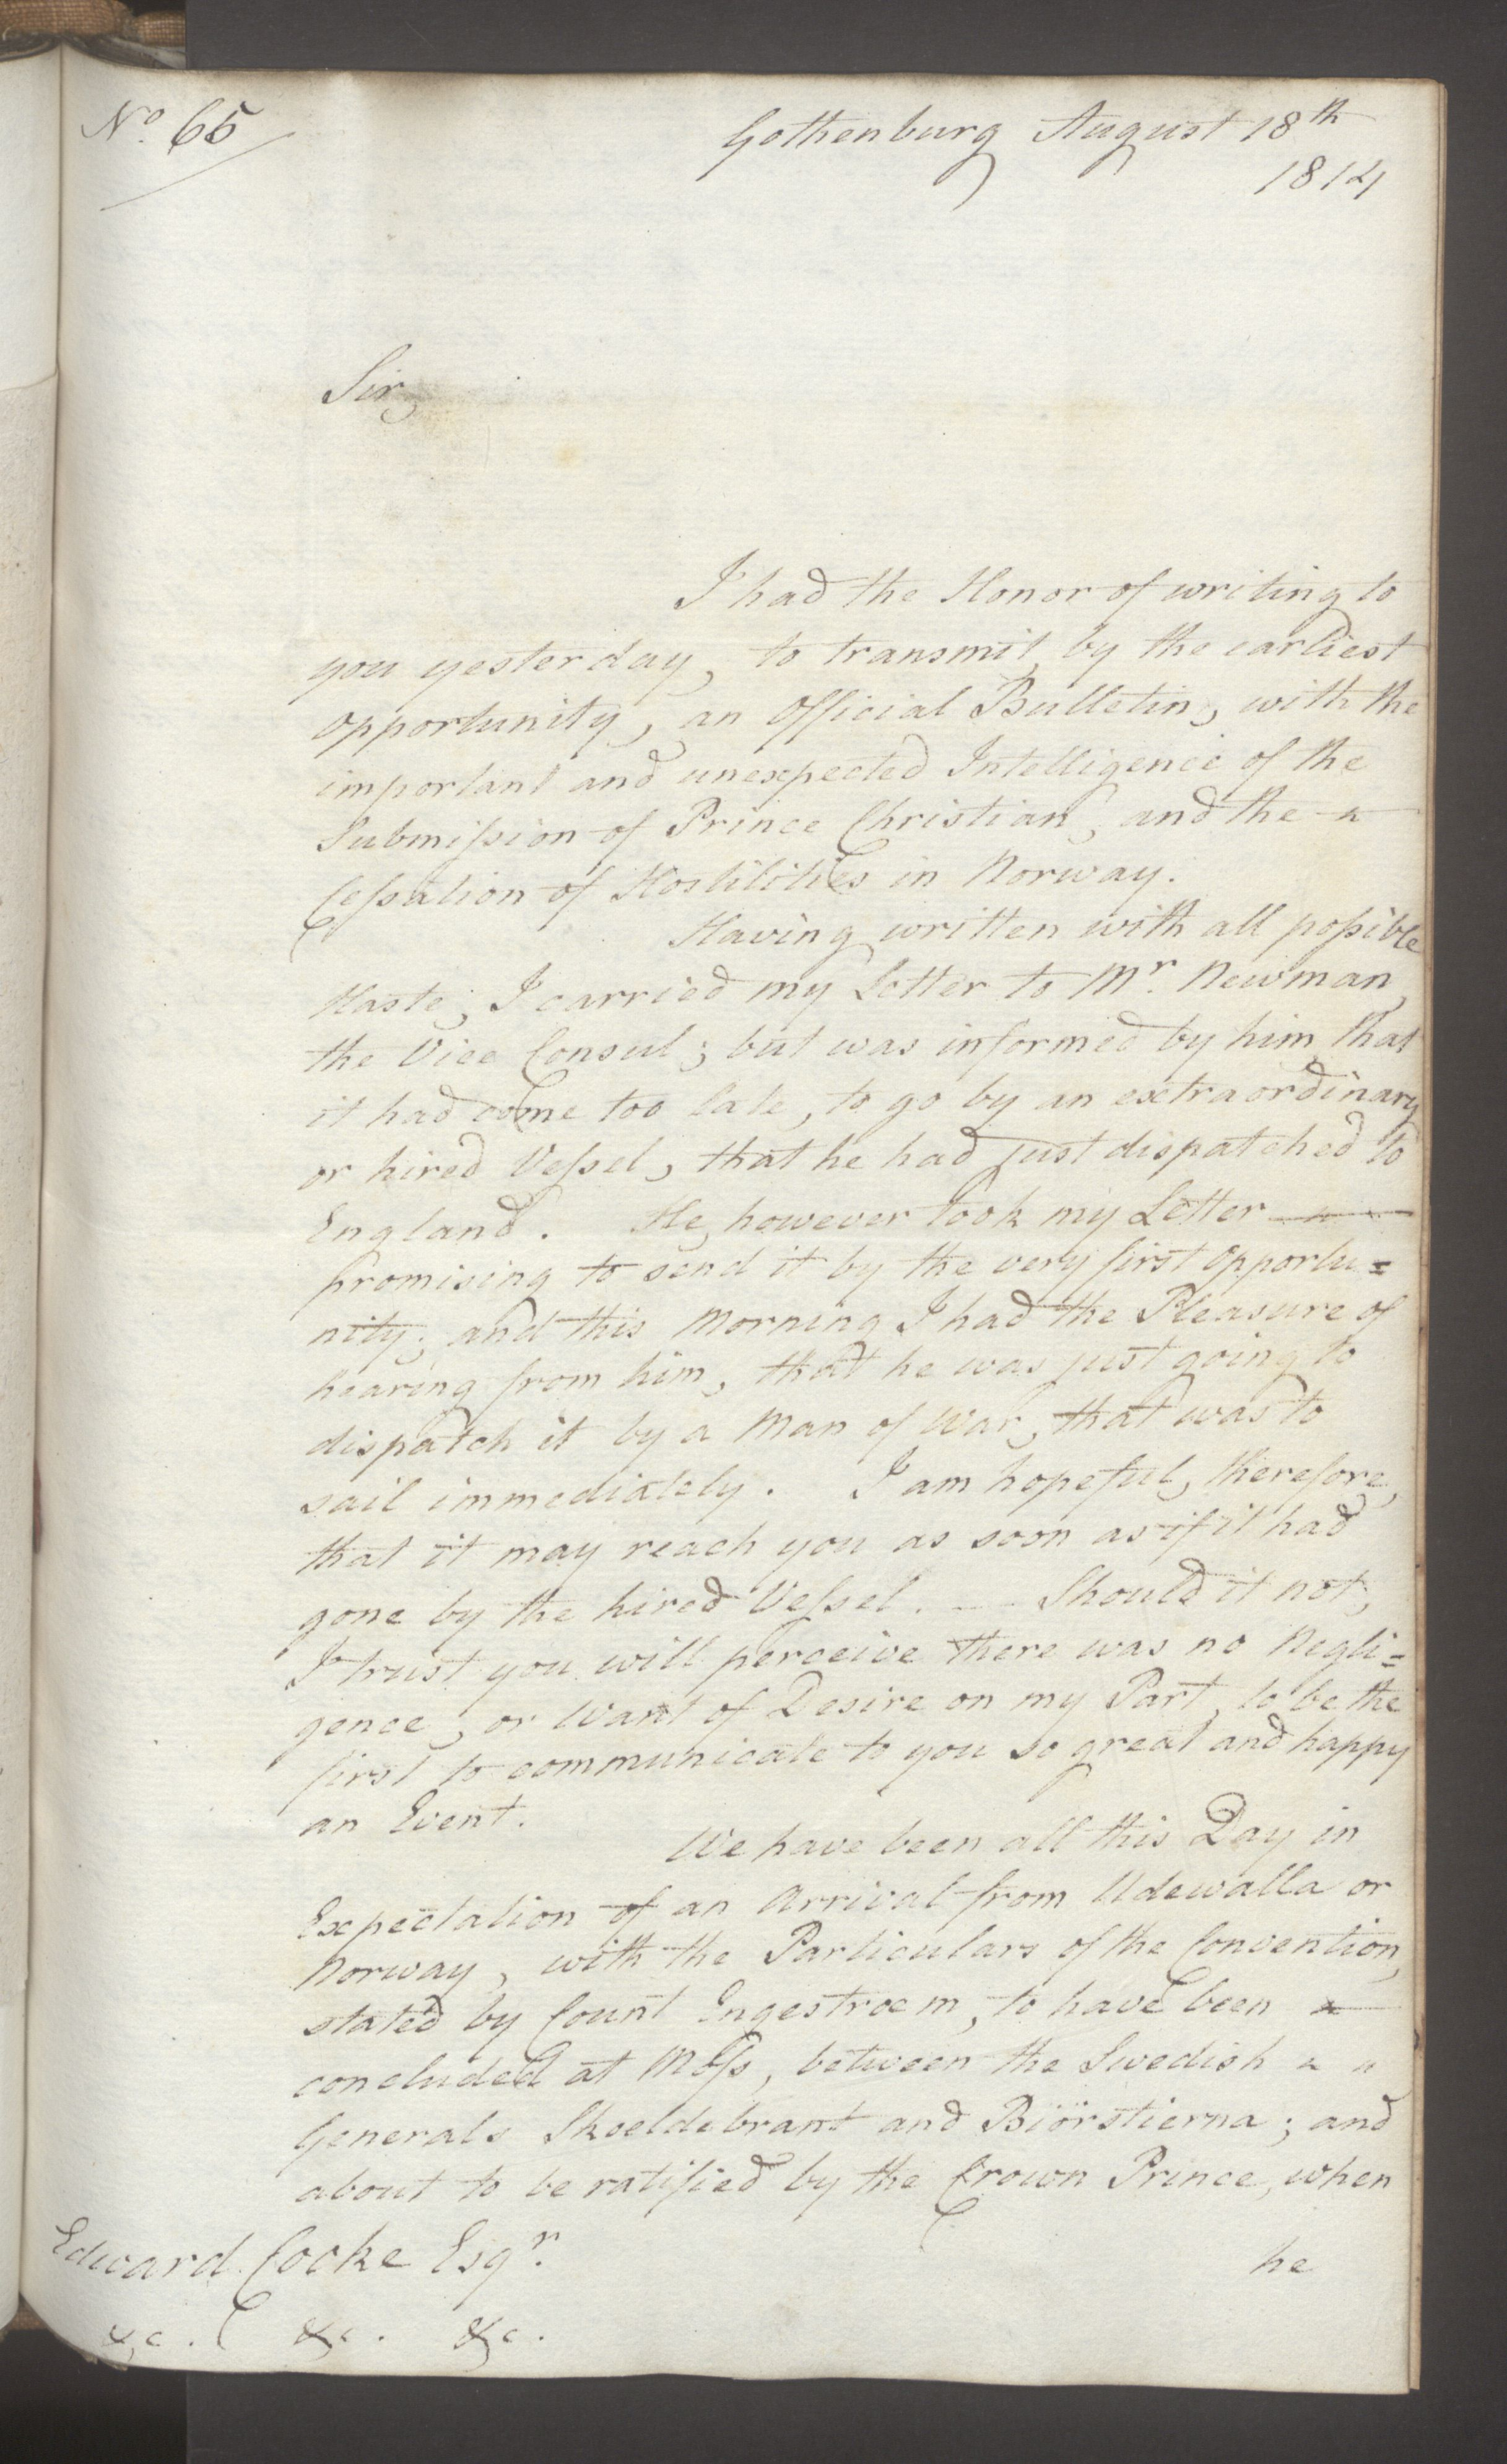 UKA, Foreign Office*, FO 38/16: Sir C. Gordon. Reports from Malmö, Jonkoping, and Helsingborg, 1814, s. 91